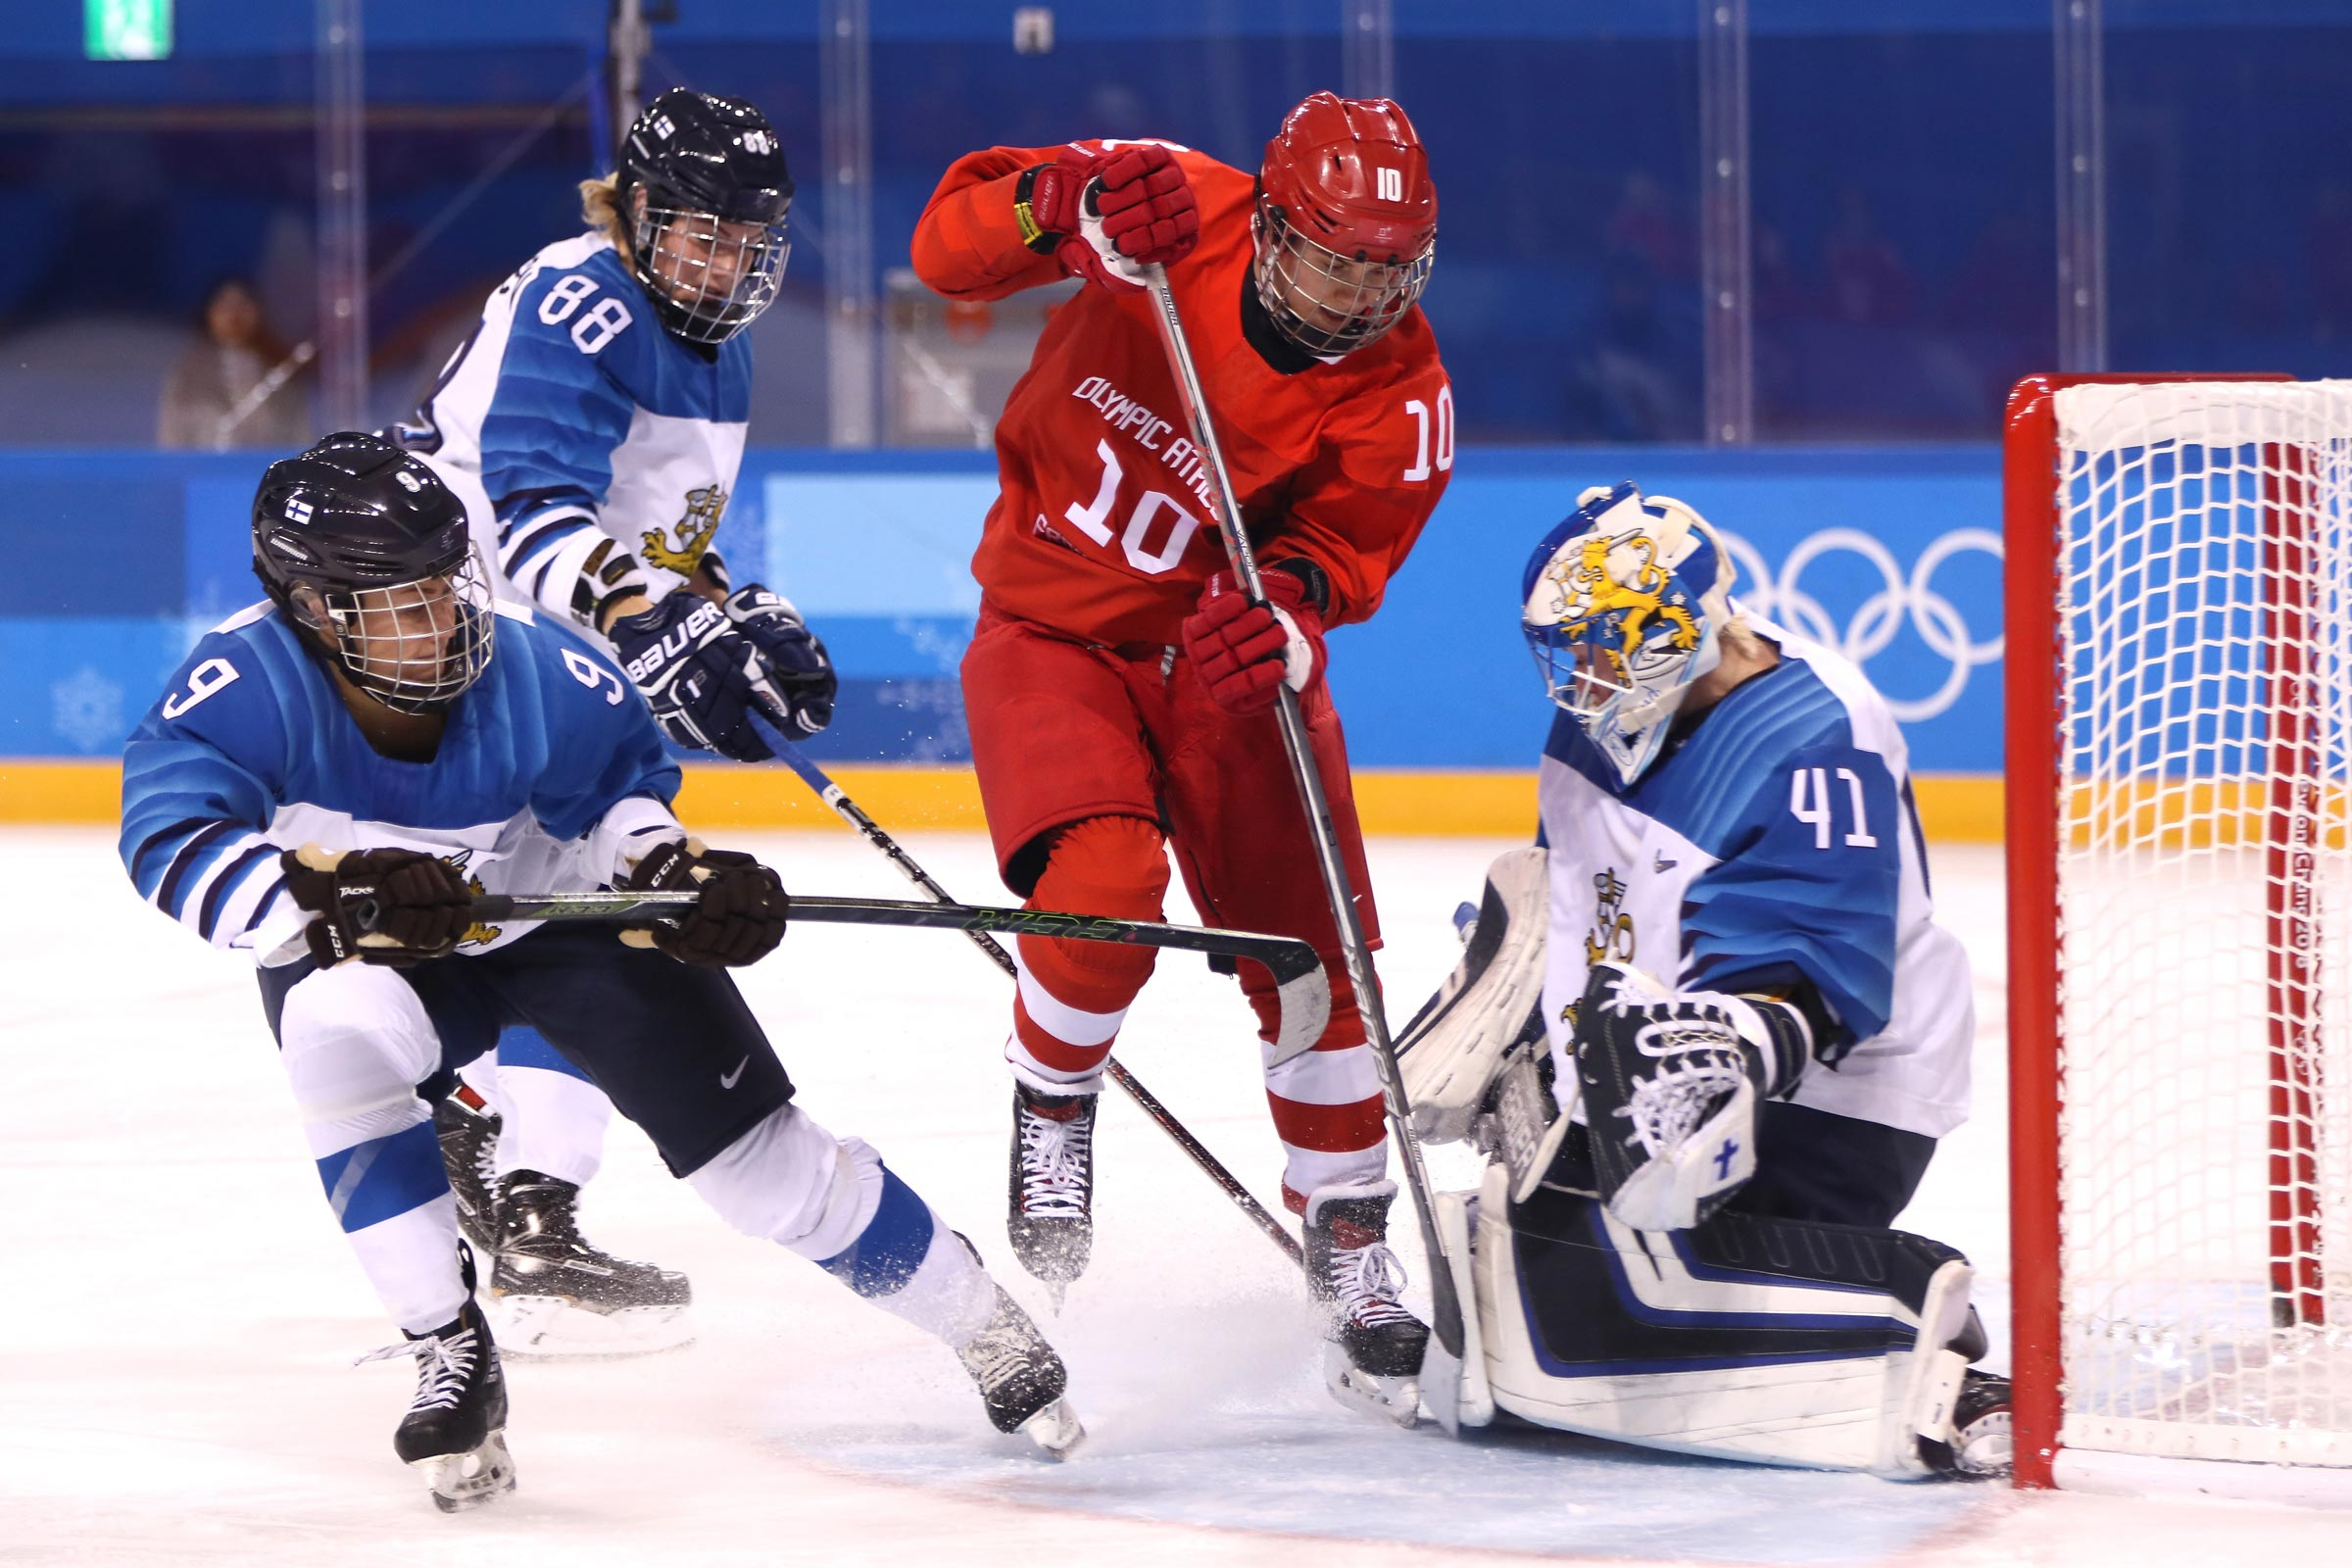 Ice Hockey - Women's Bronze Medal